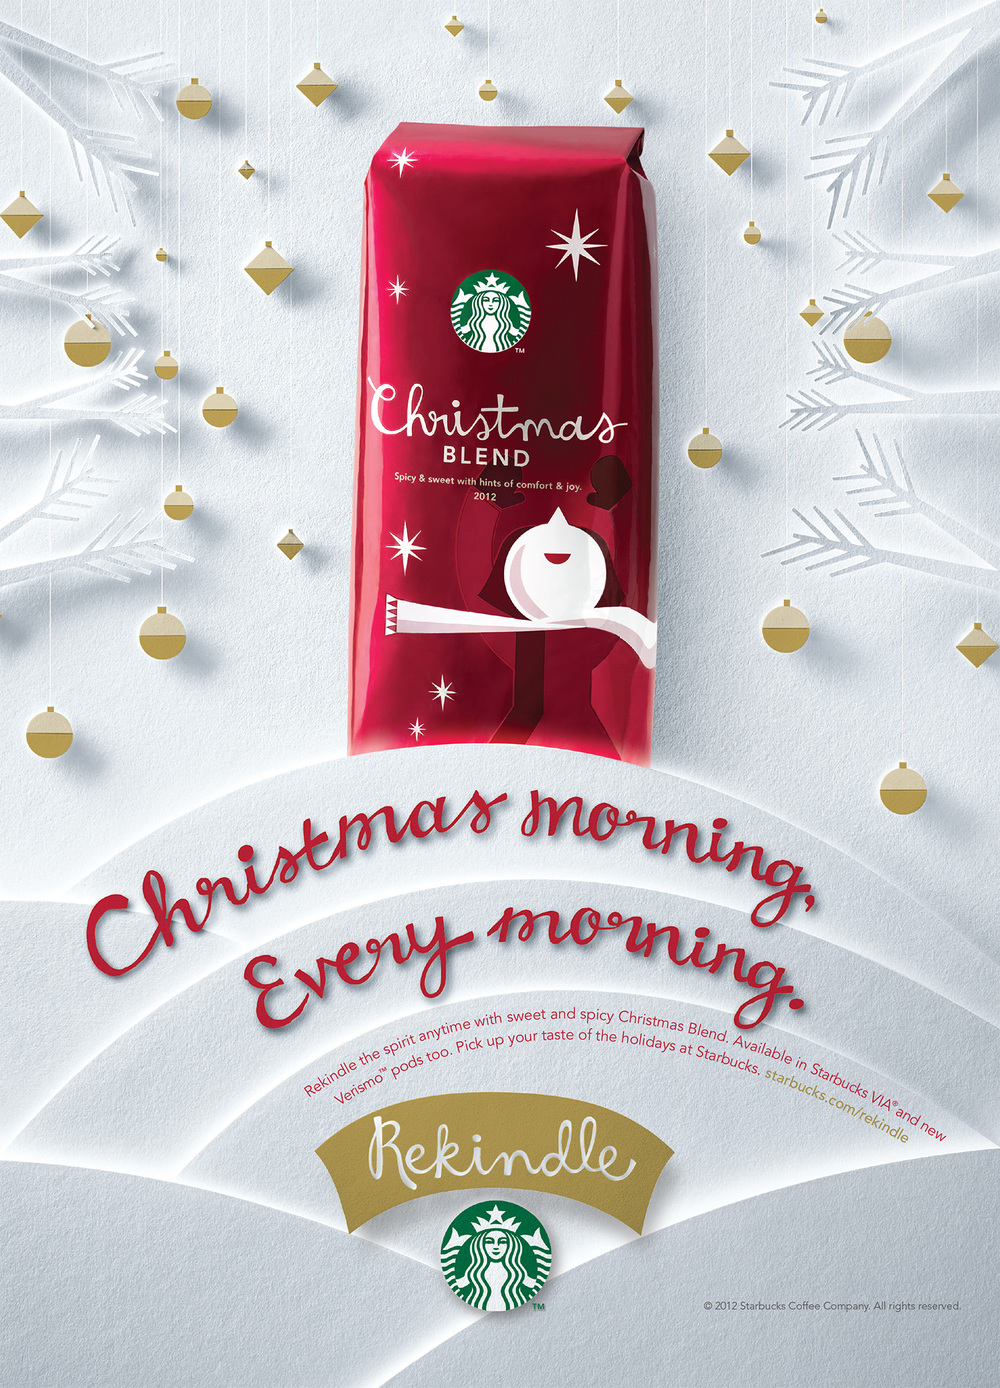 STARBUCKS-CHRISTMAS-BLEND-opt.jpg